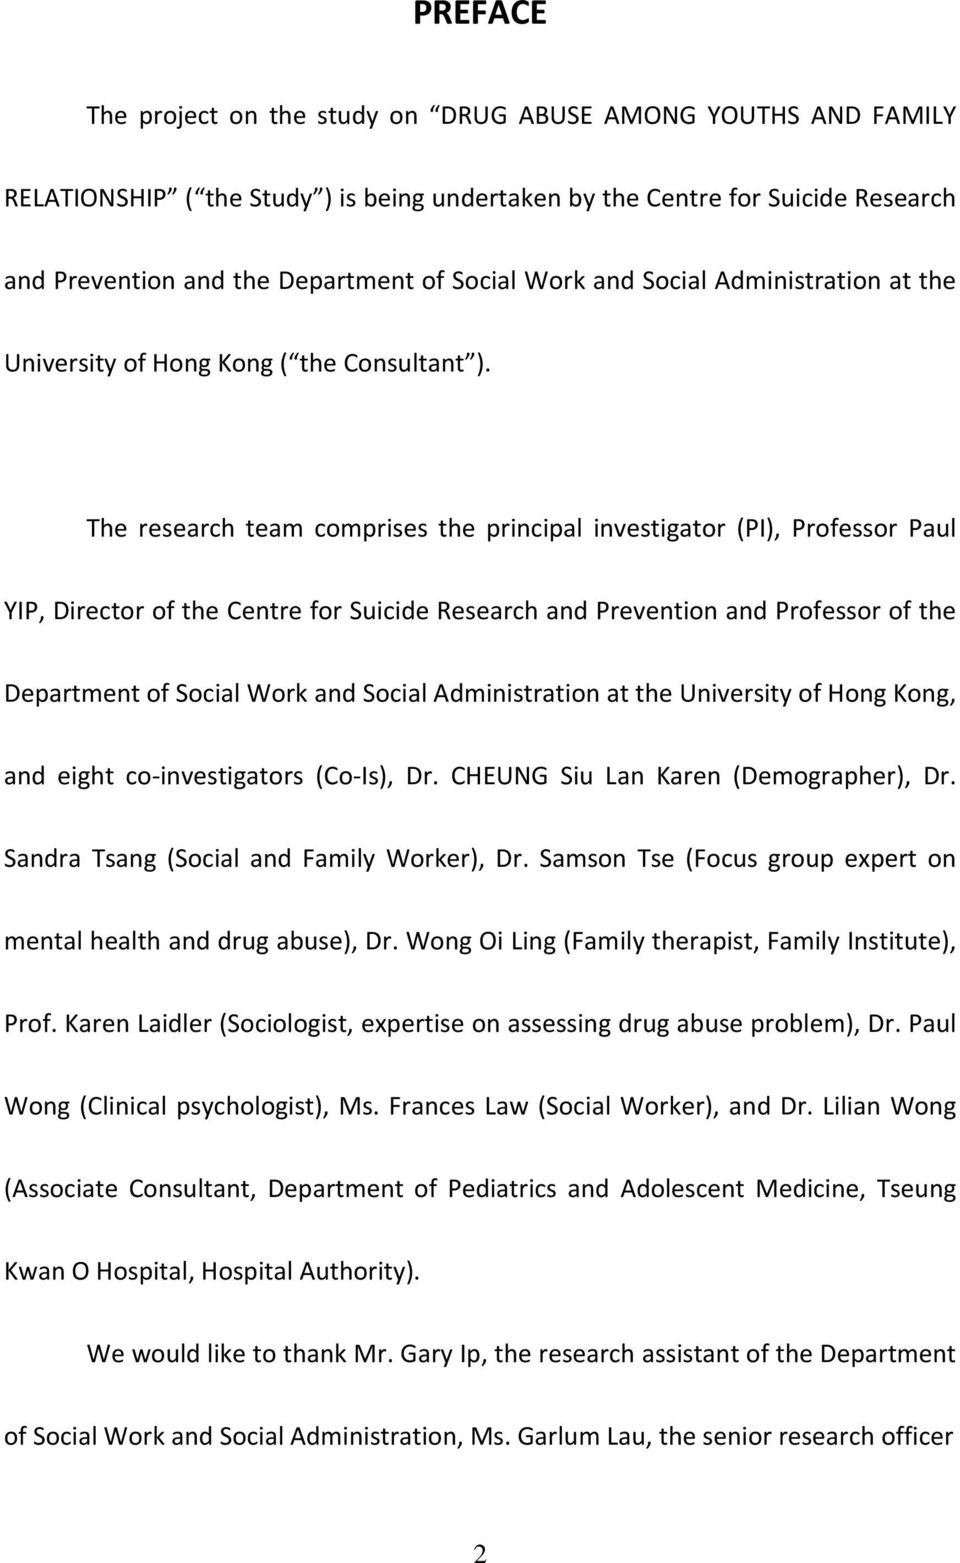 The research team comprises the principal investigator (PI), Professor Paul YIP, Director of the Centre for Suicide Research and Prevention and Professor of the Department of Social Work and Social